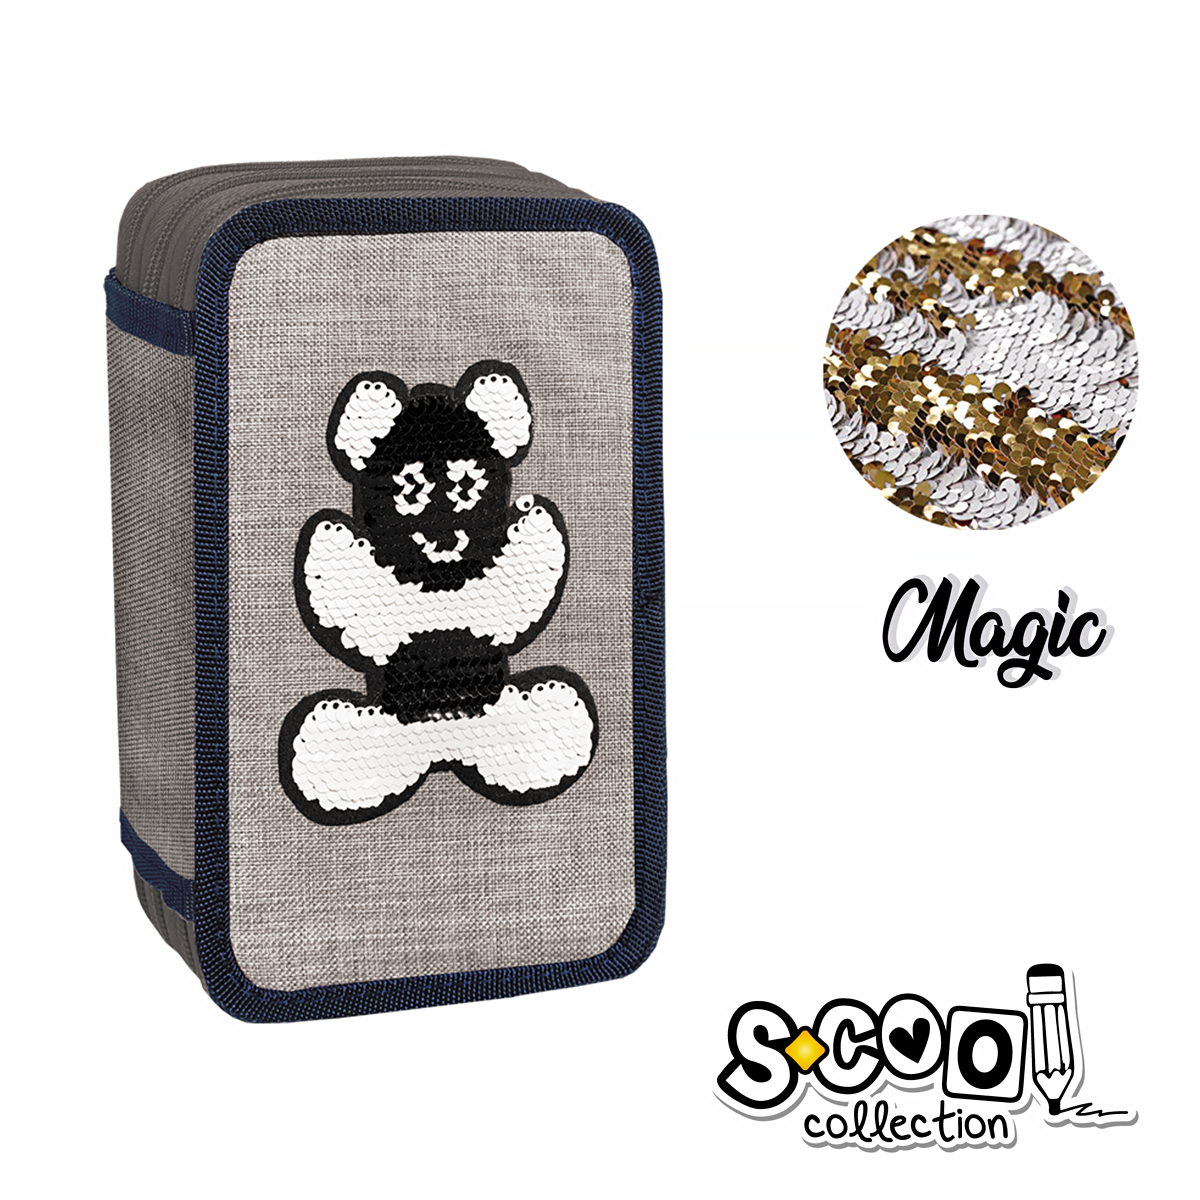 Penar Echipat cu Trei Fermoare, Model Magic Happy Bear, S-Cool, SC867